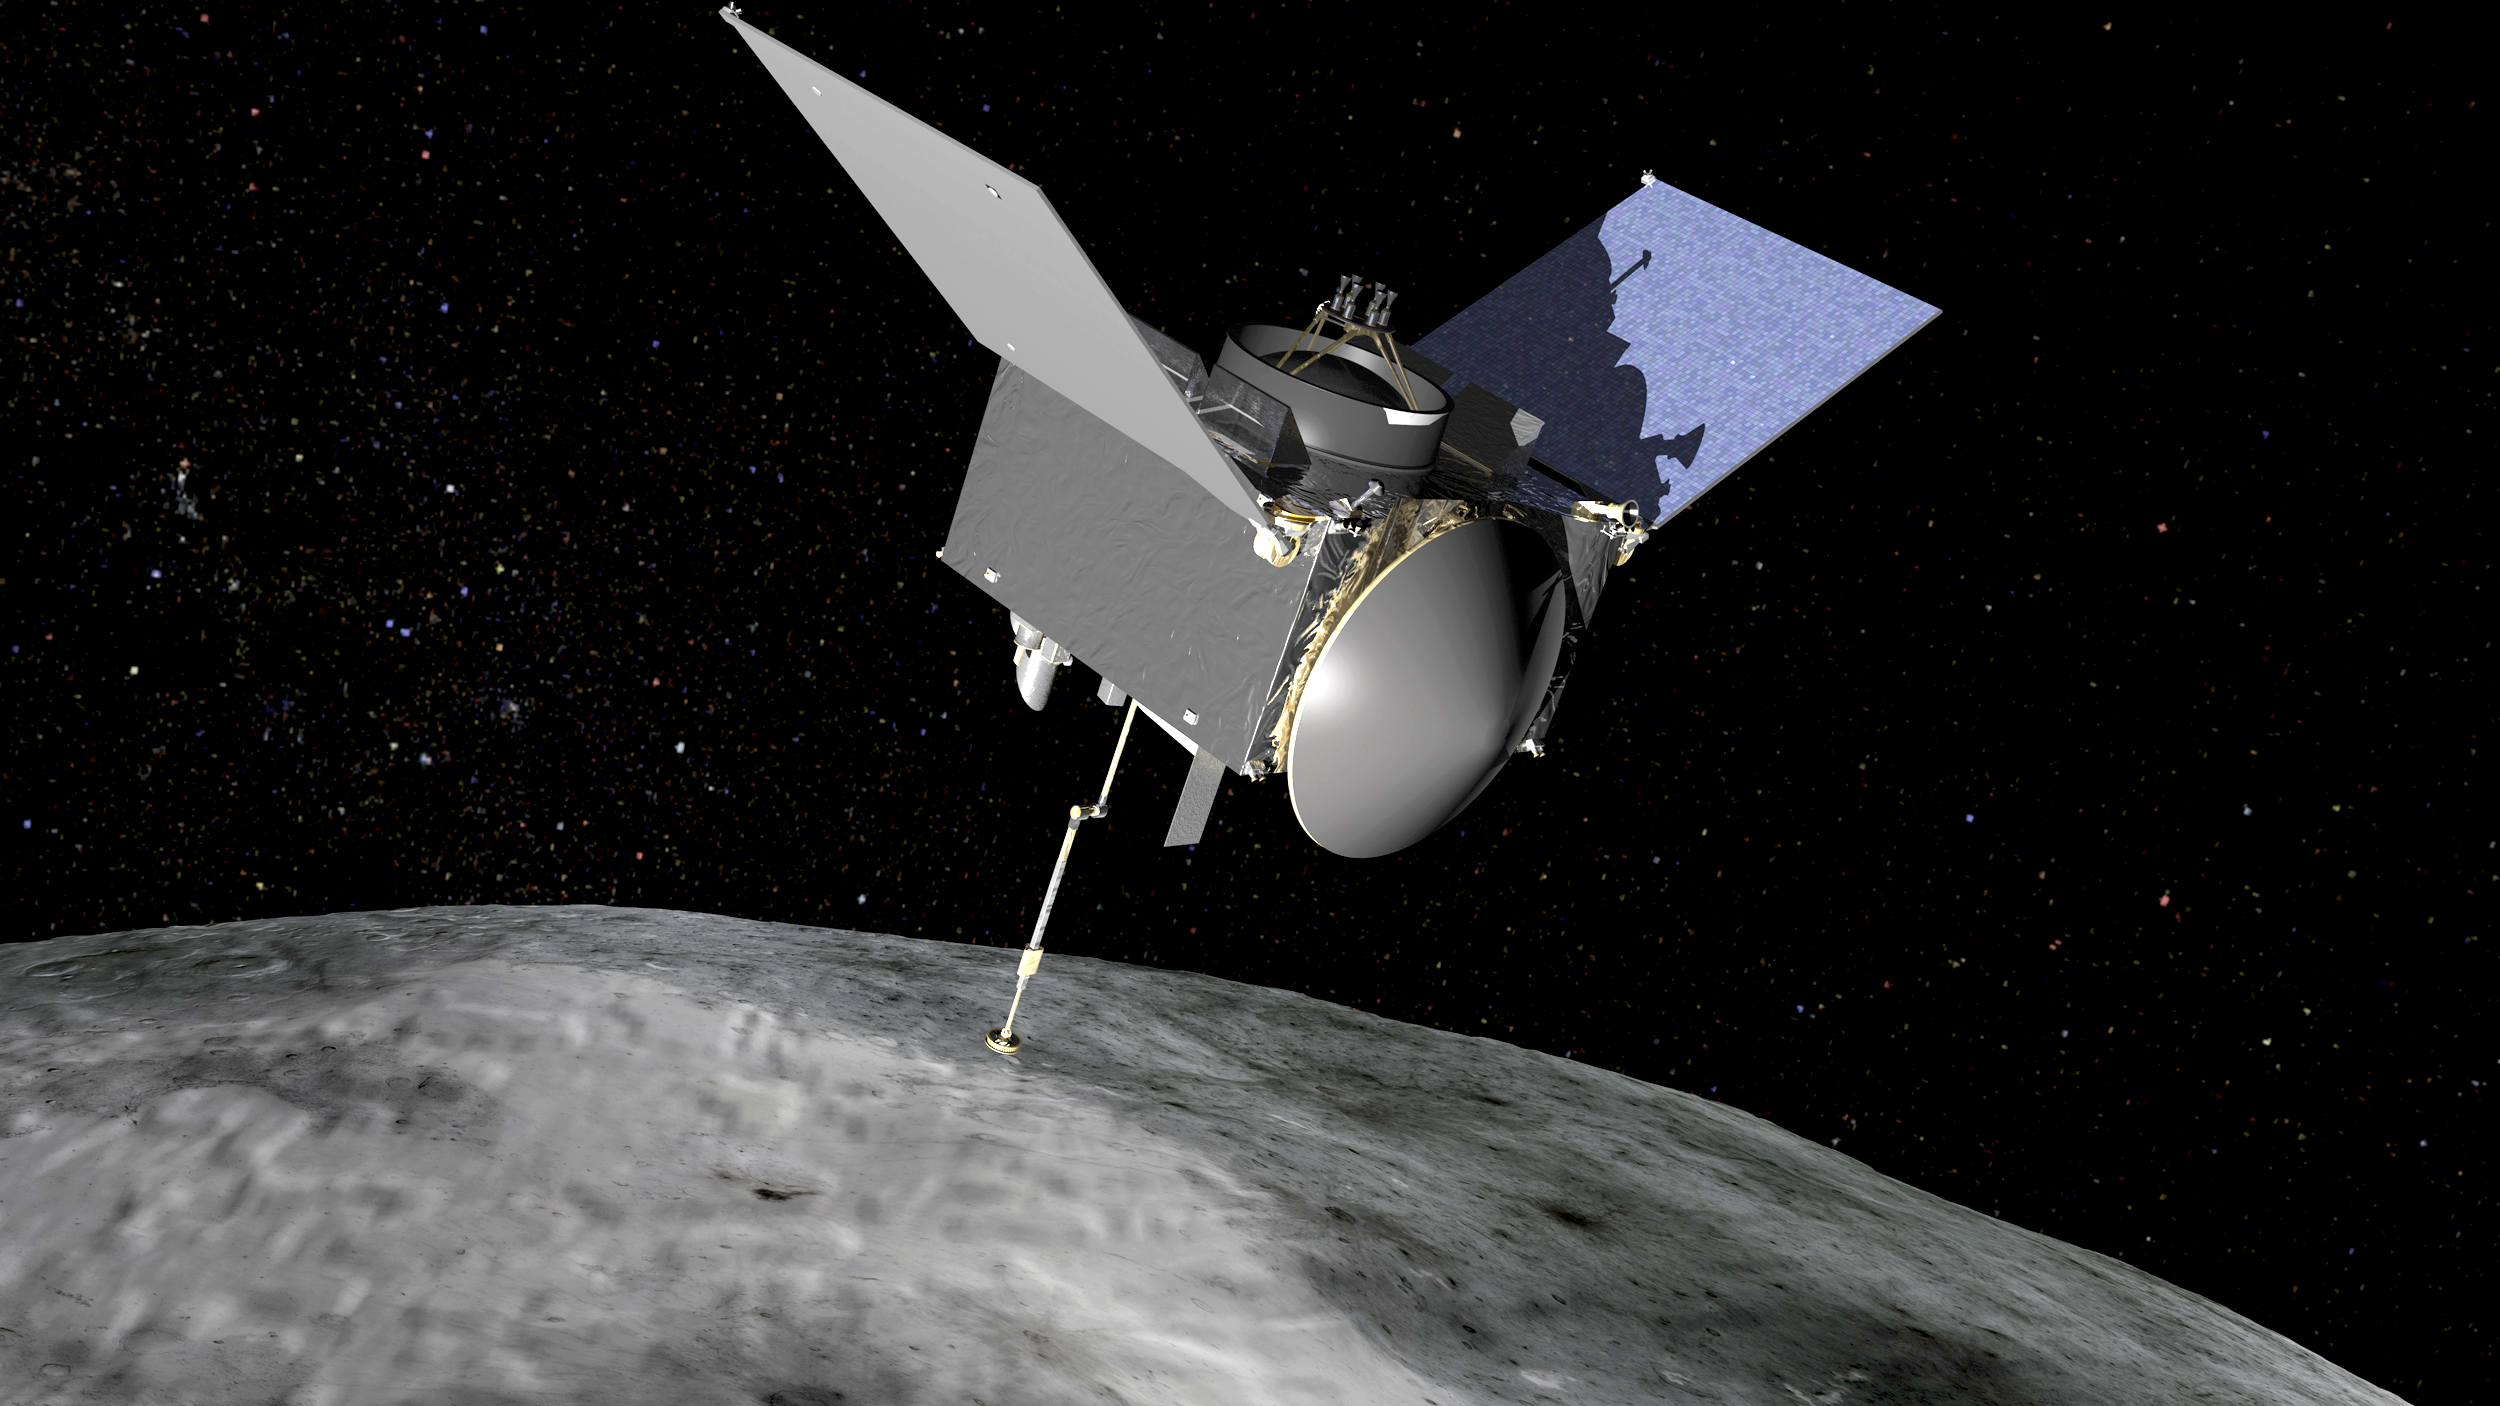 OSIRIS-REx will travel to near-Earth asteroid Bennu on a sample return mission. Credits: NASA